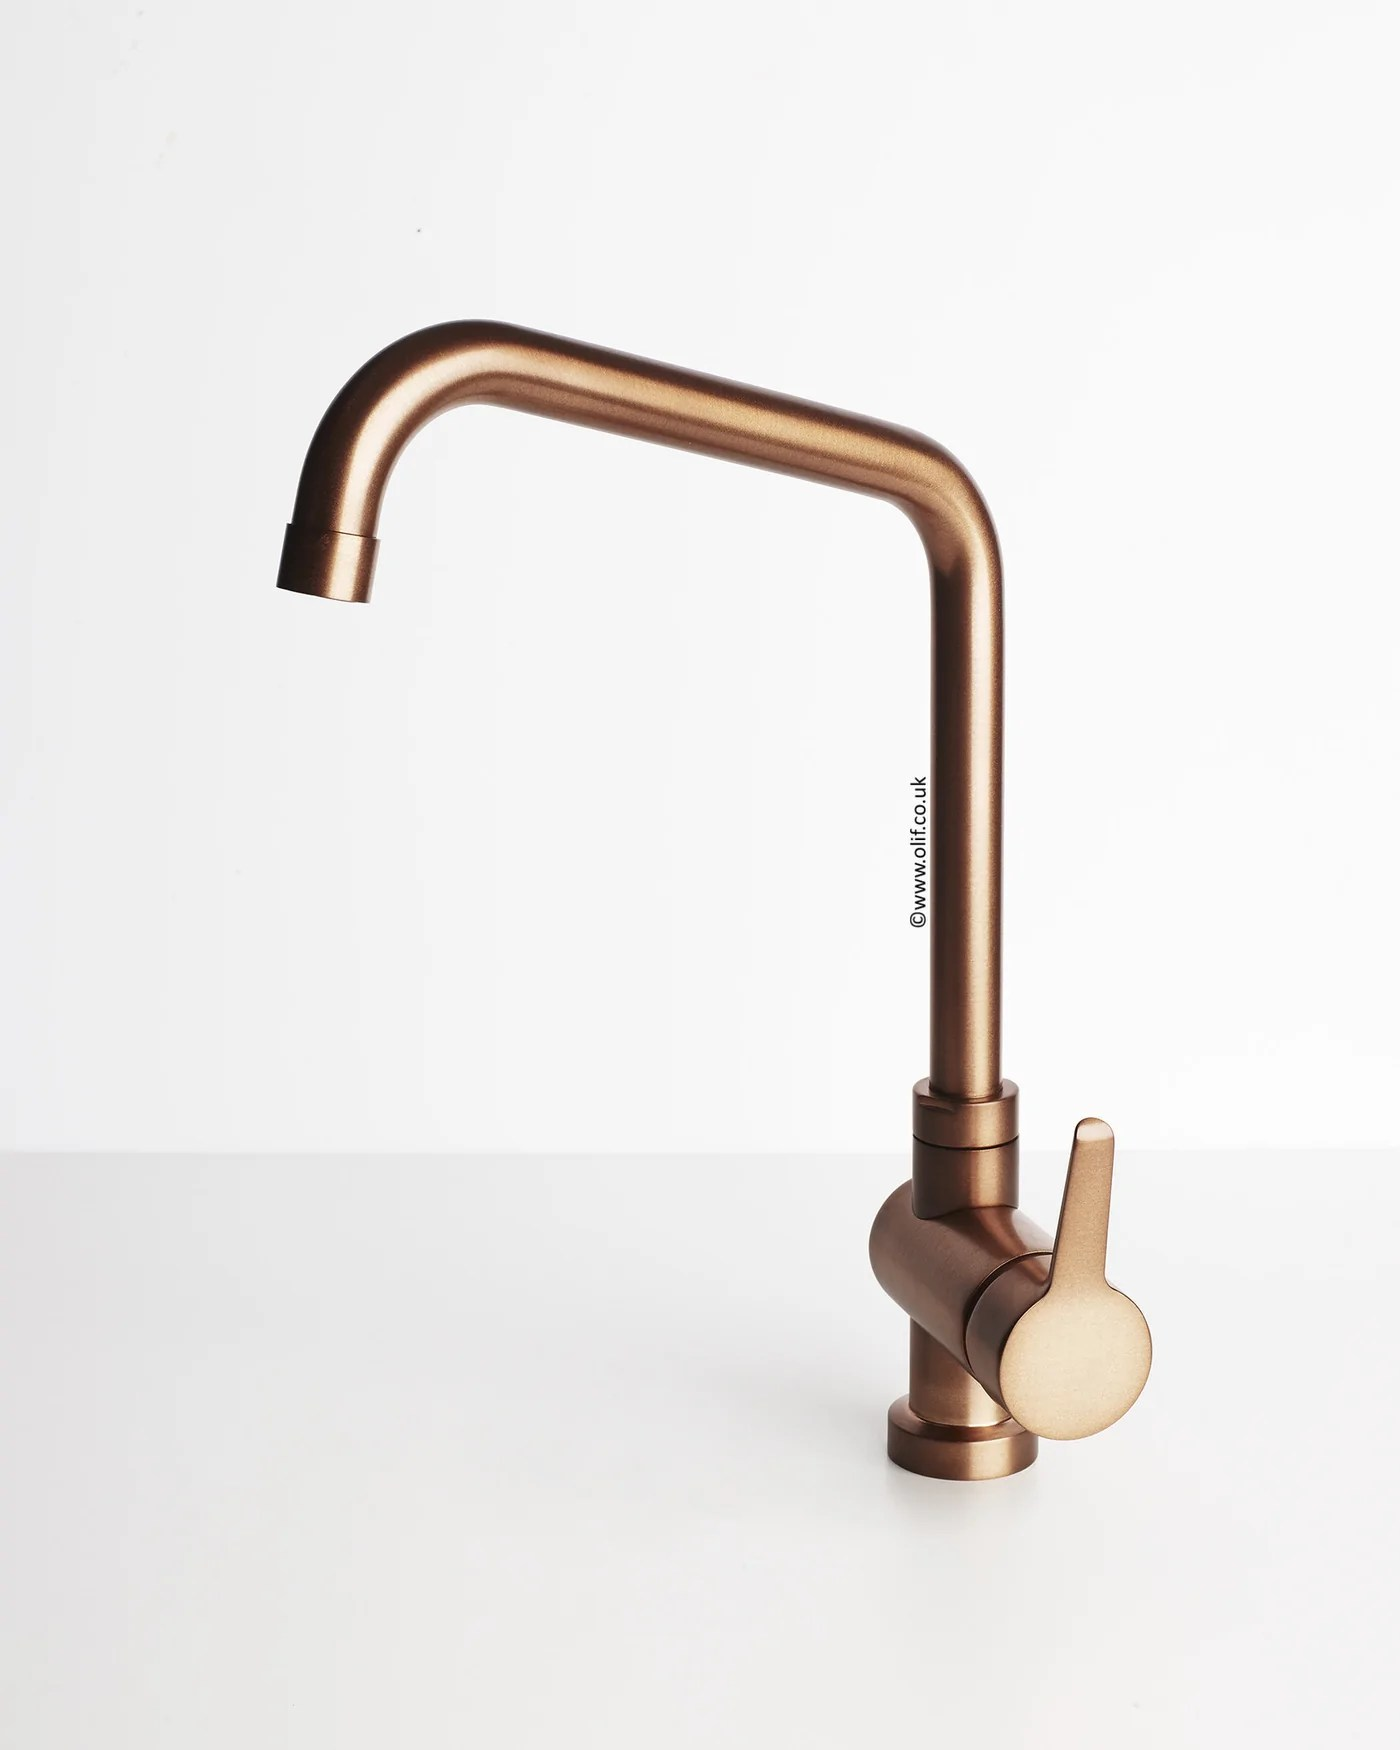 Copper Taps Brushed Copper Kitchen Mixer Tap Primo Copper By Olif